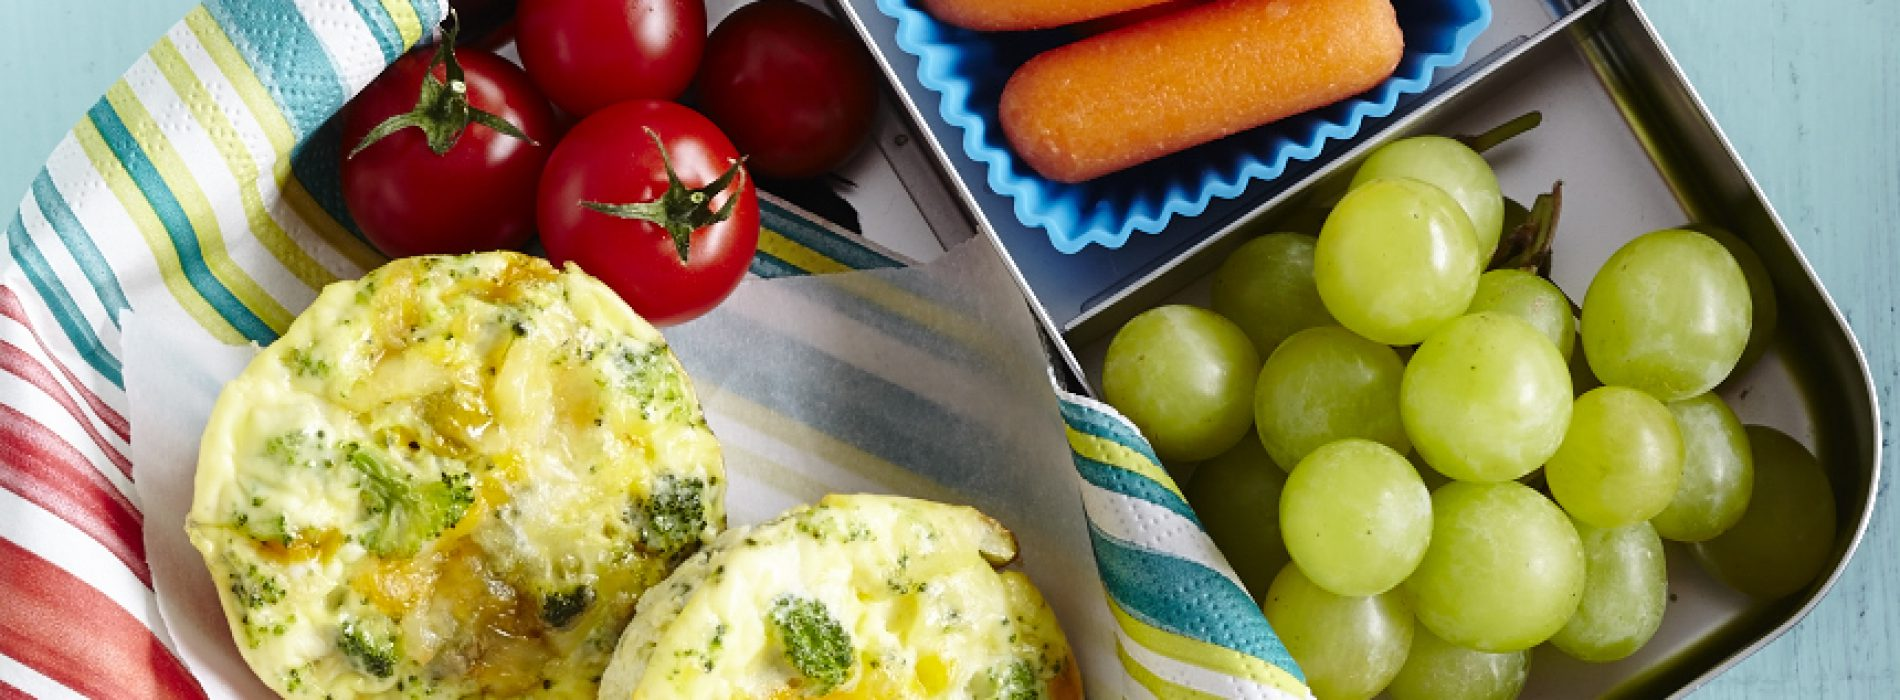 Broccoli and Cheese Mini Frittata